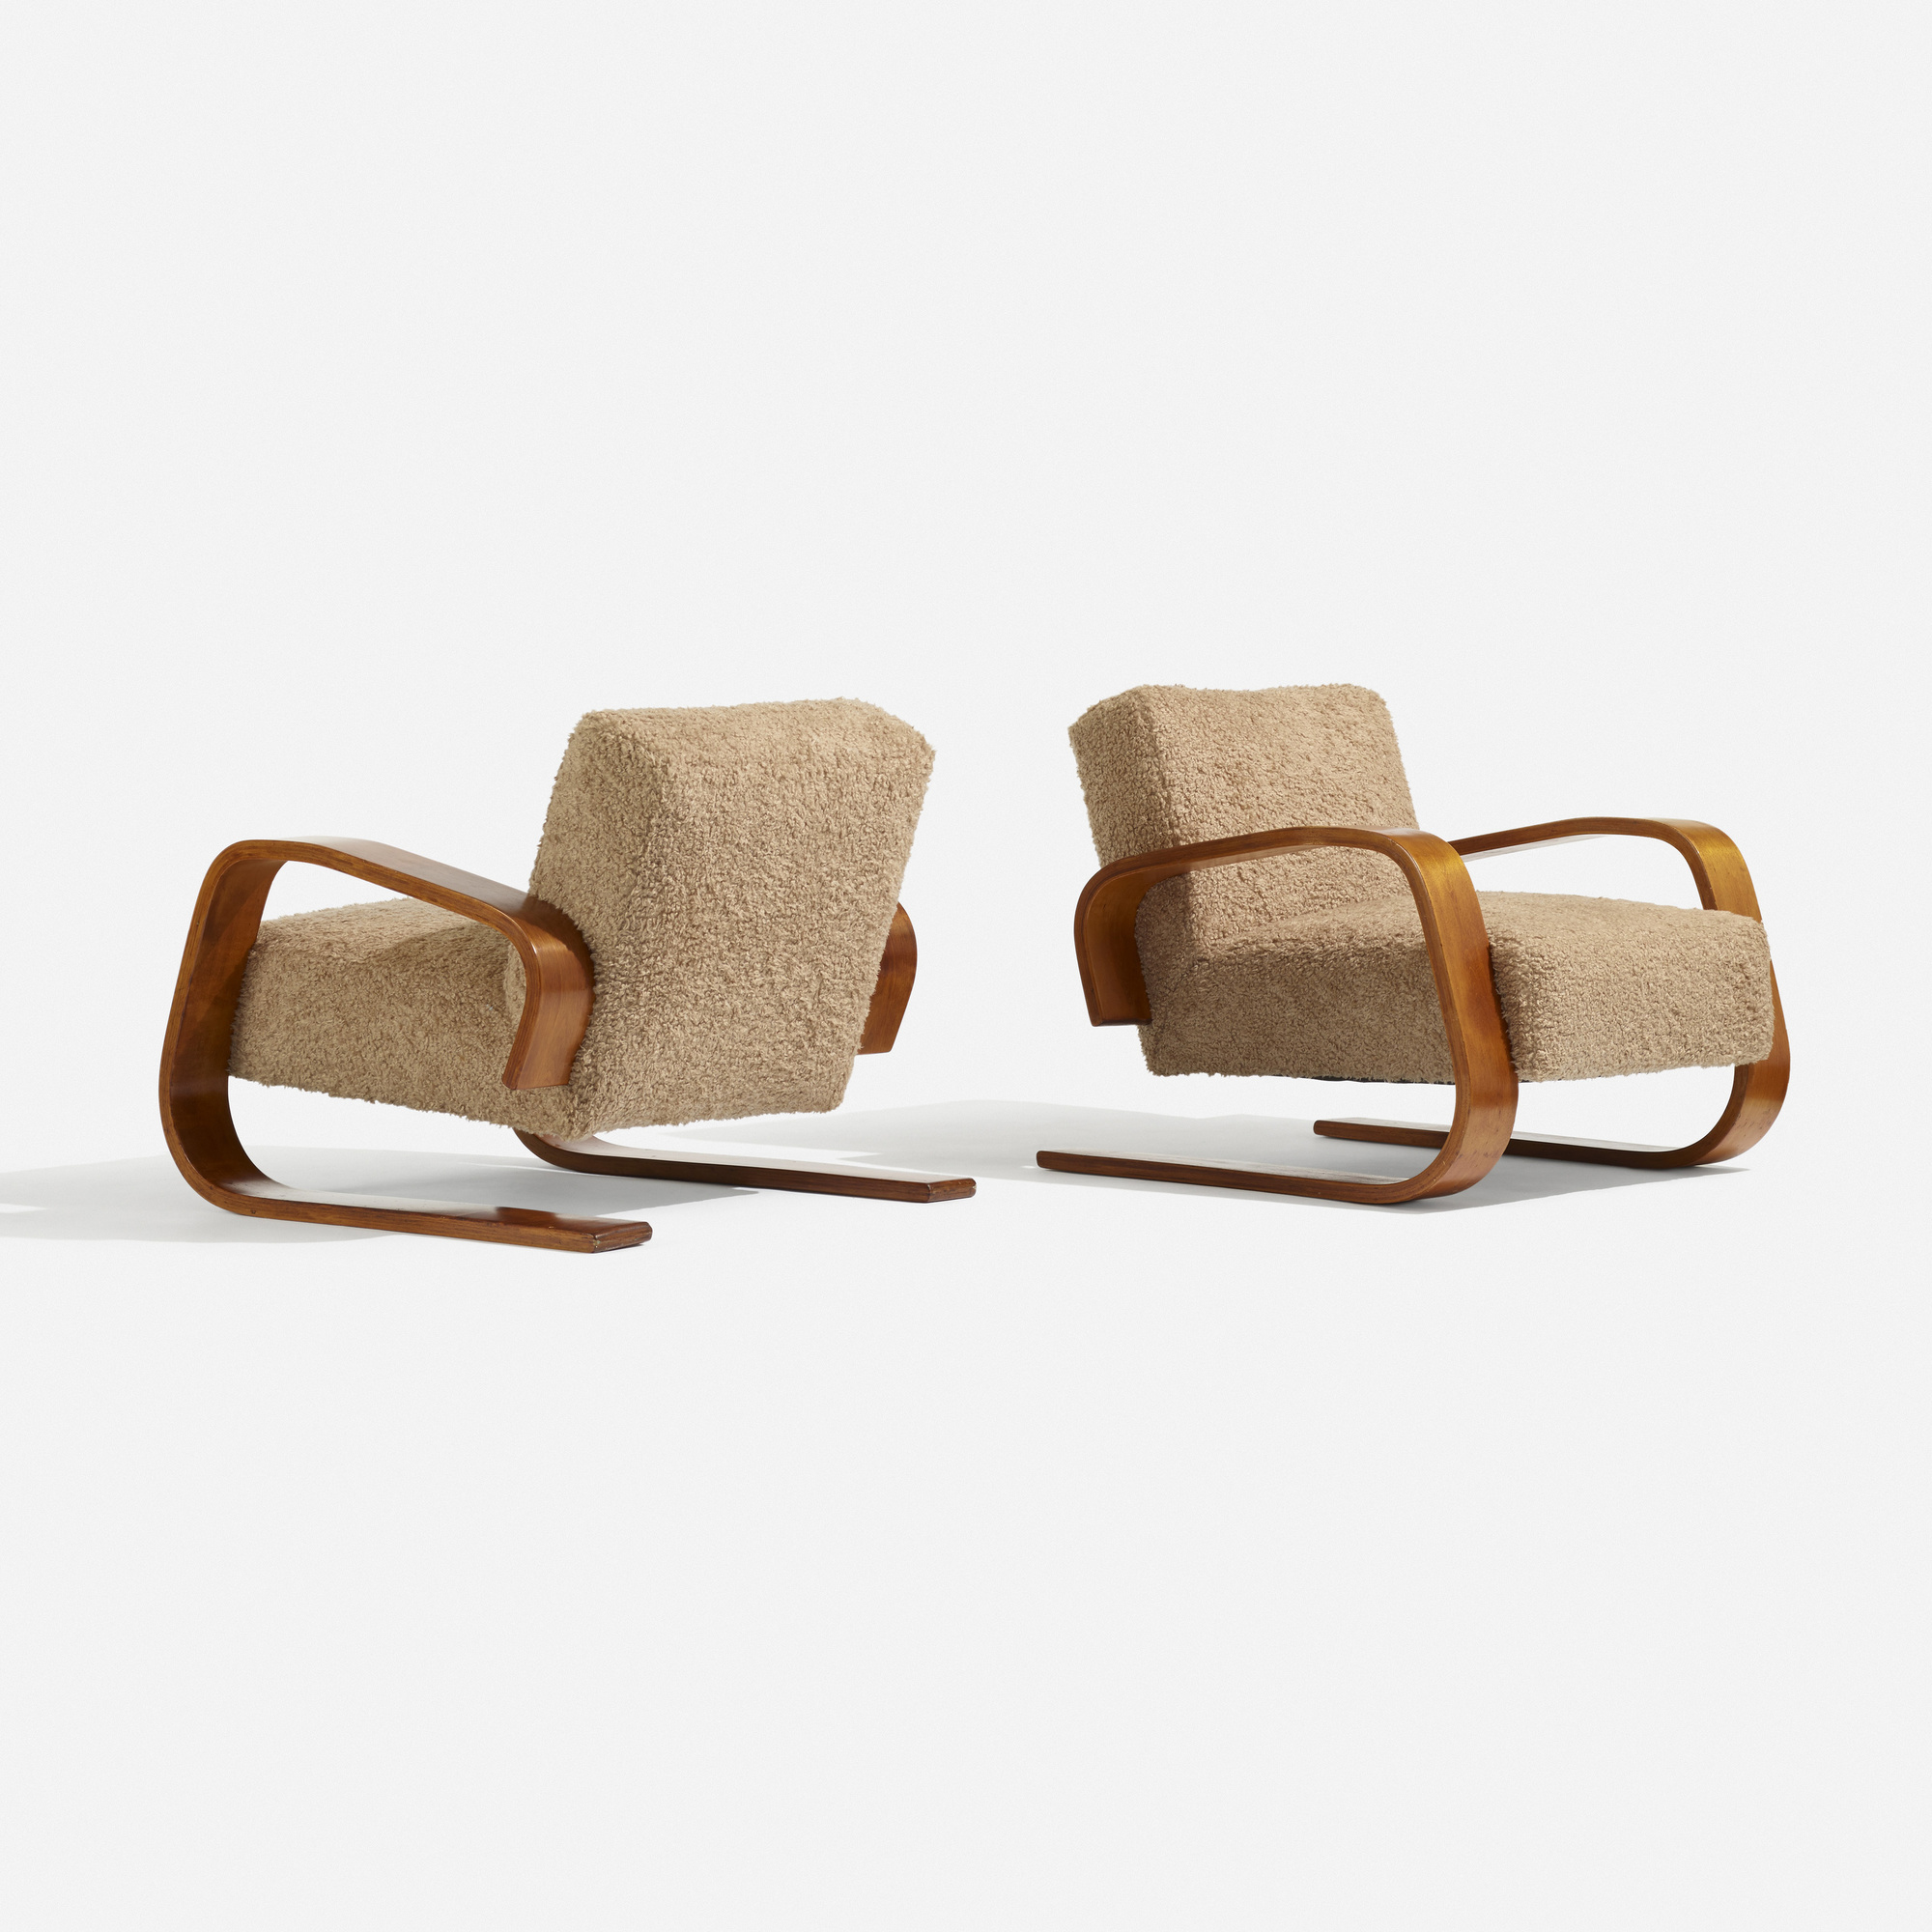 Armchair 400 � Tank� Lounge Chairs From Artek: 107: ALVAR AALTO, Tank Lounge Chairs Model 37/400, Pair